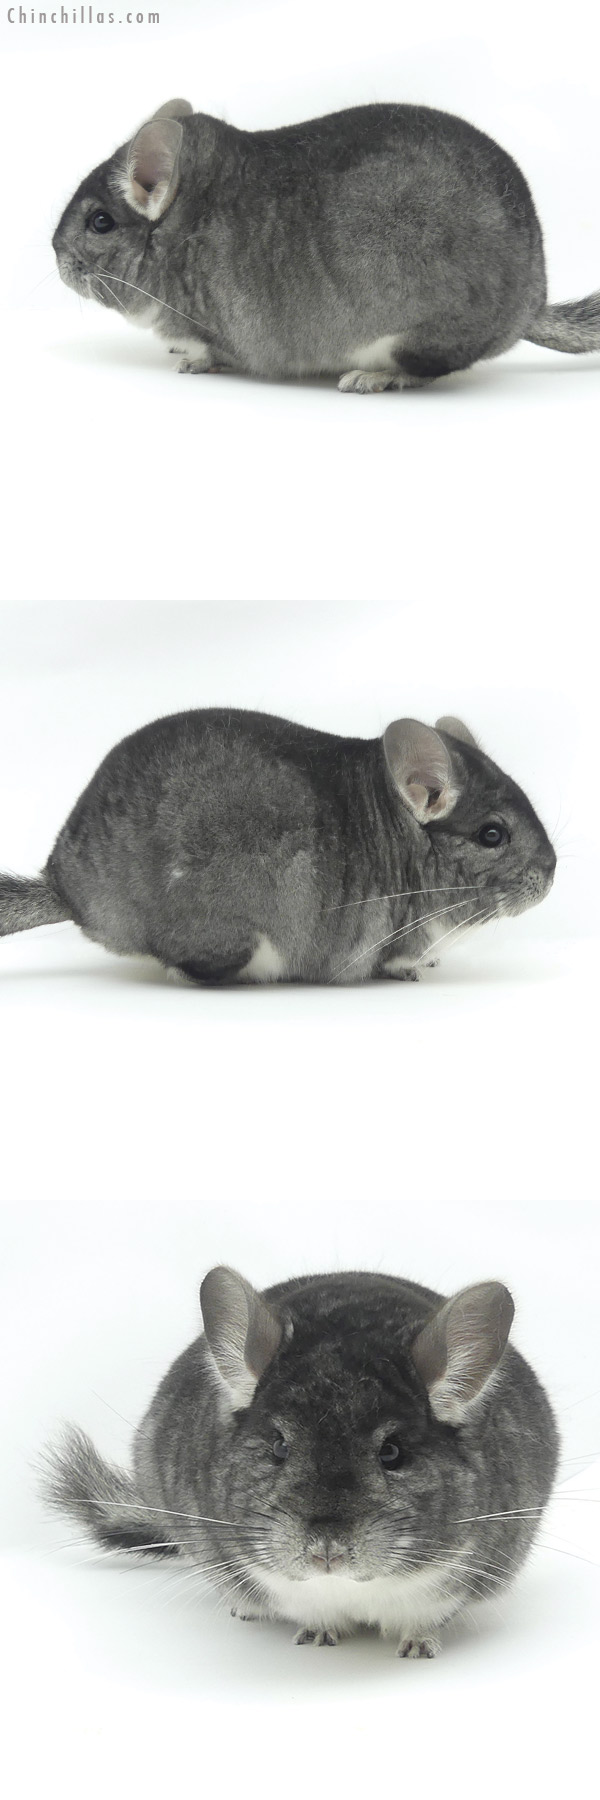 20141 Blocky Premium Production Quality Standard Female Chinchilla